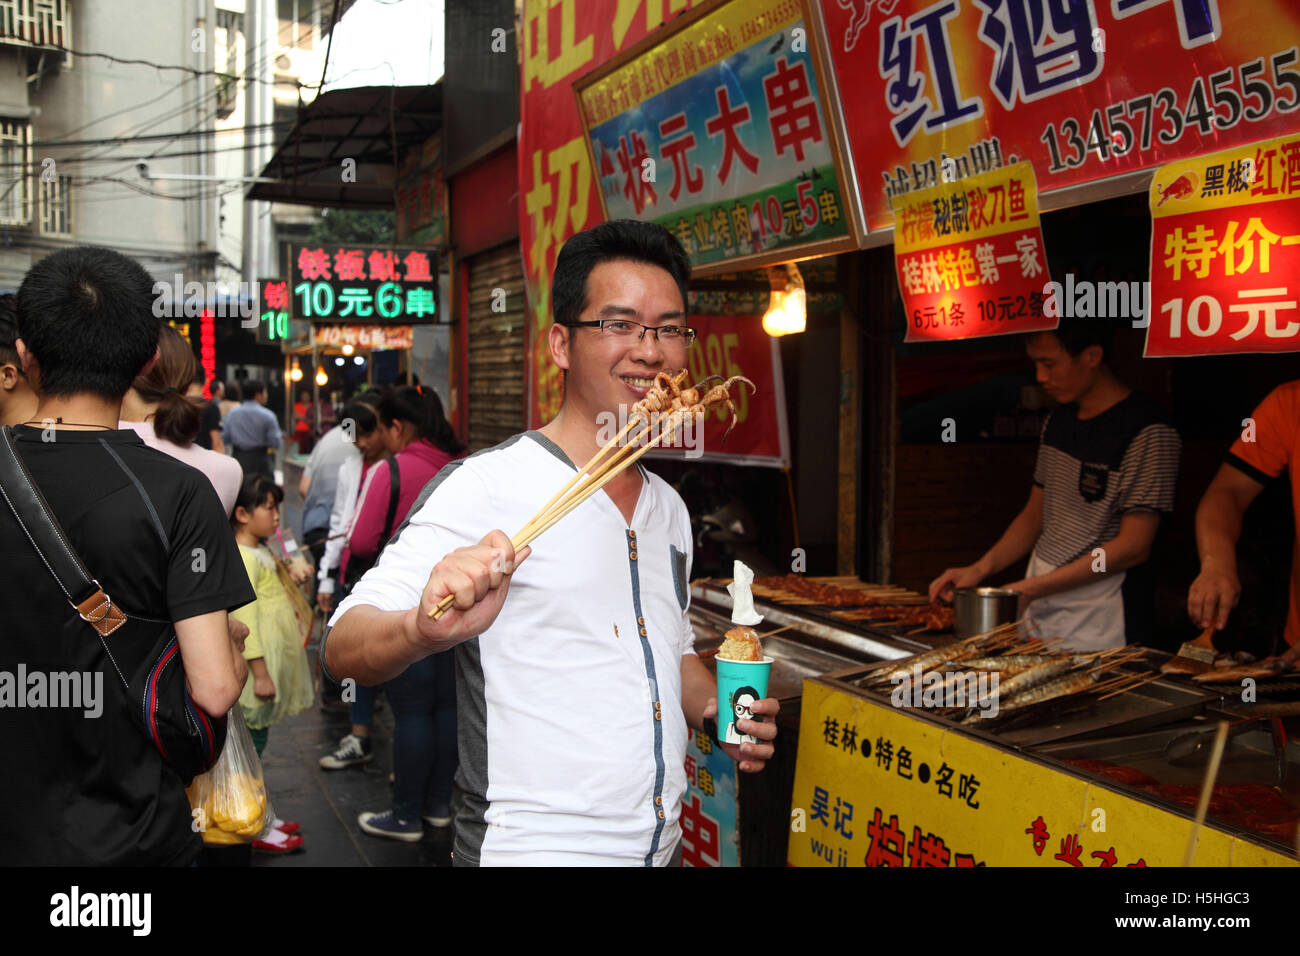 A young Chinese man smiles while eating squids on skewers in front of a fast food stand. The market in Guilin, China. - Stock Image